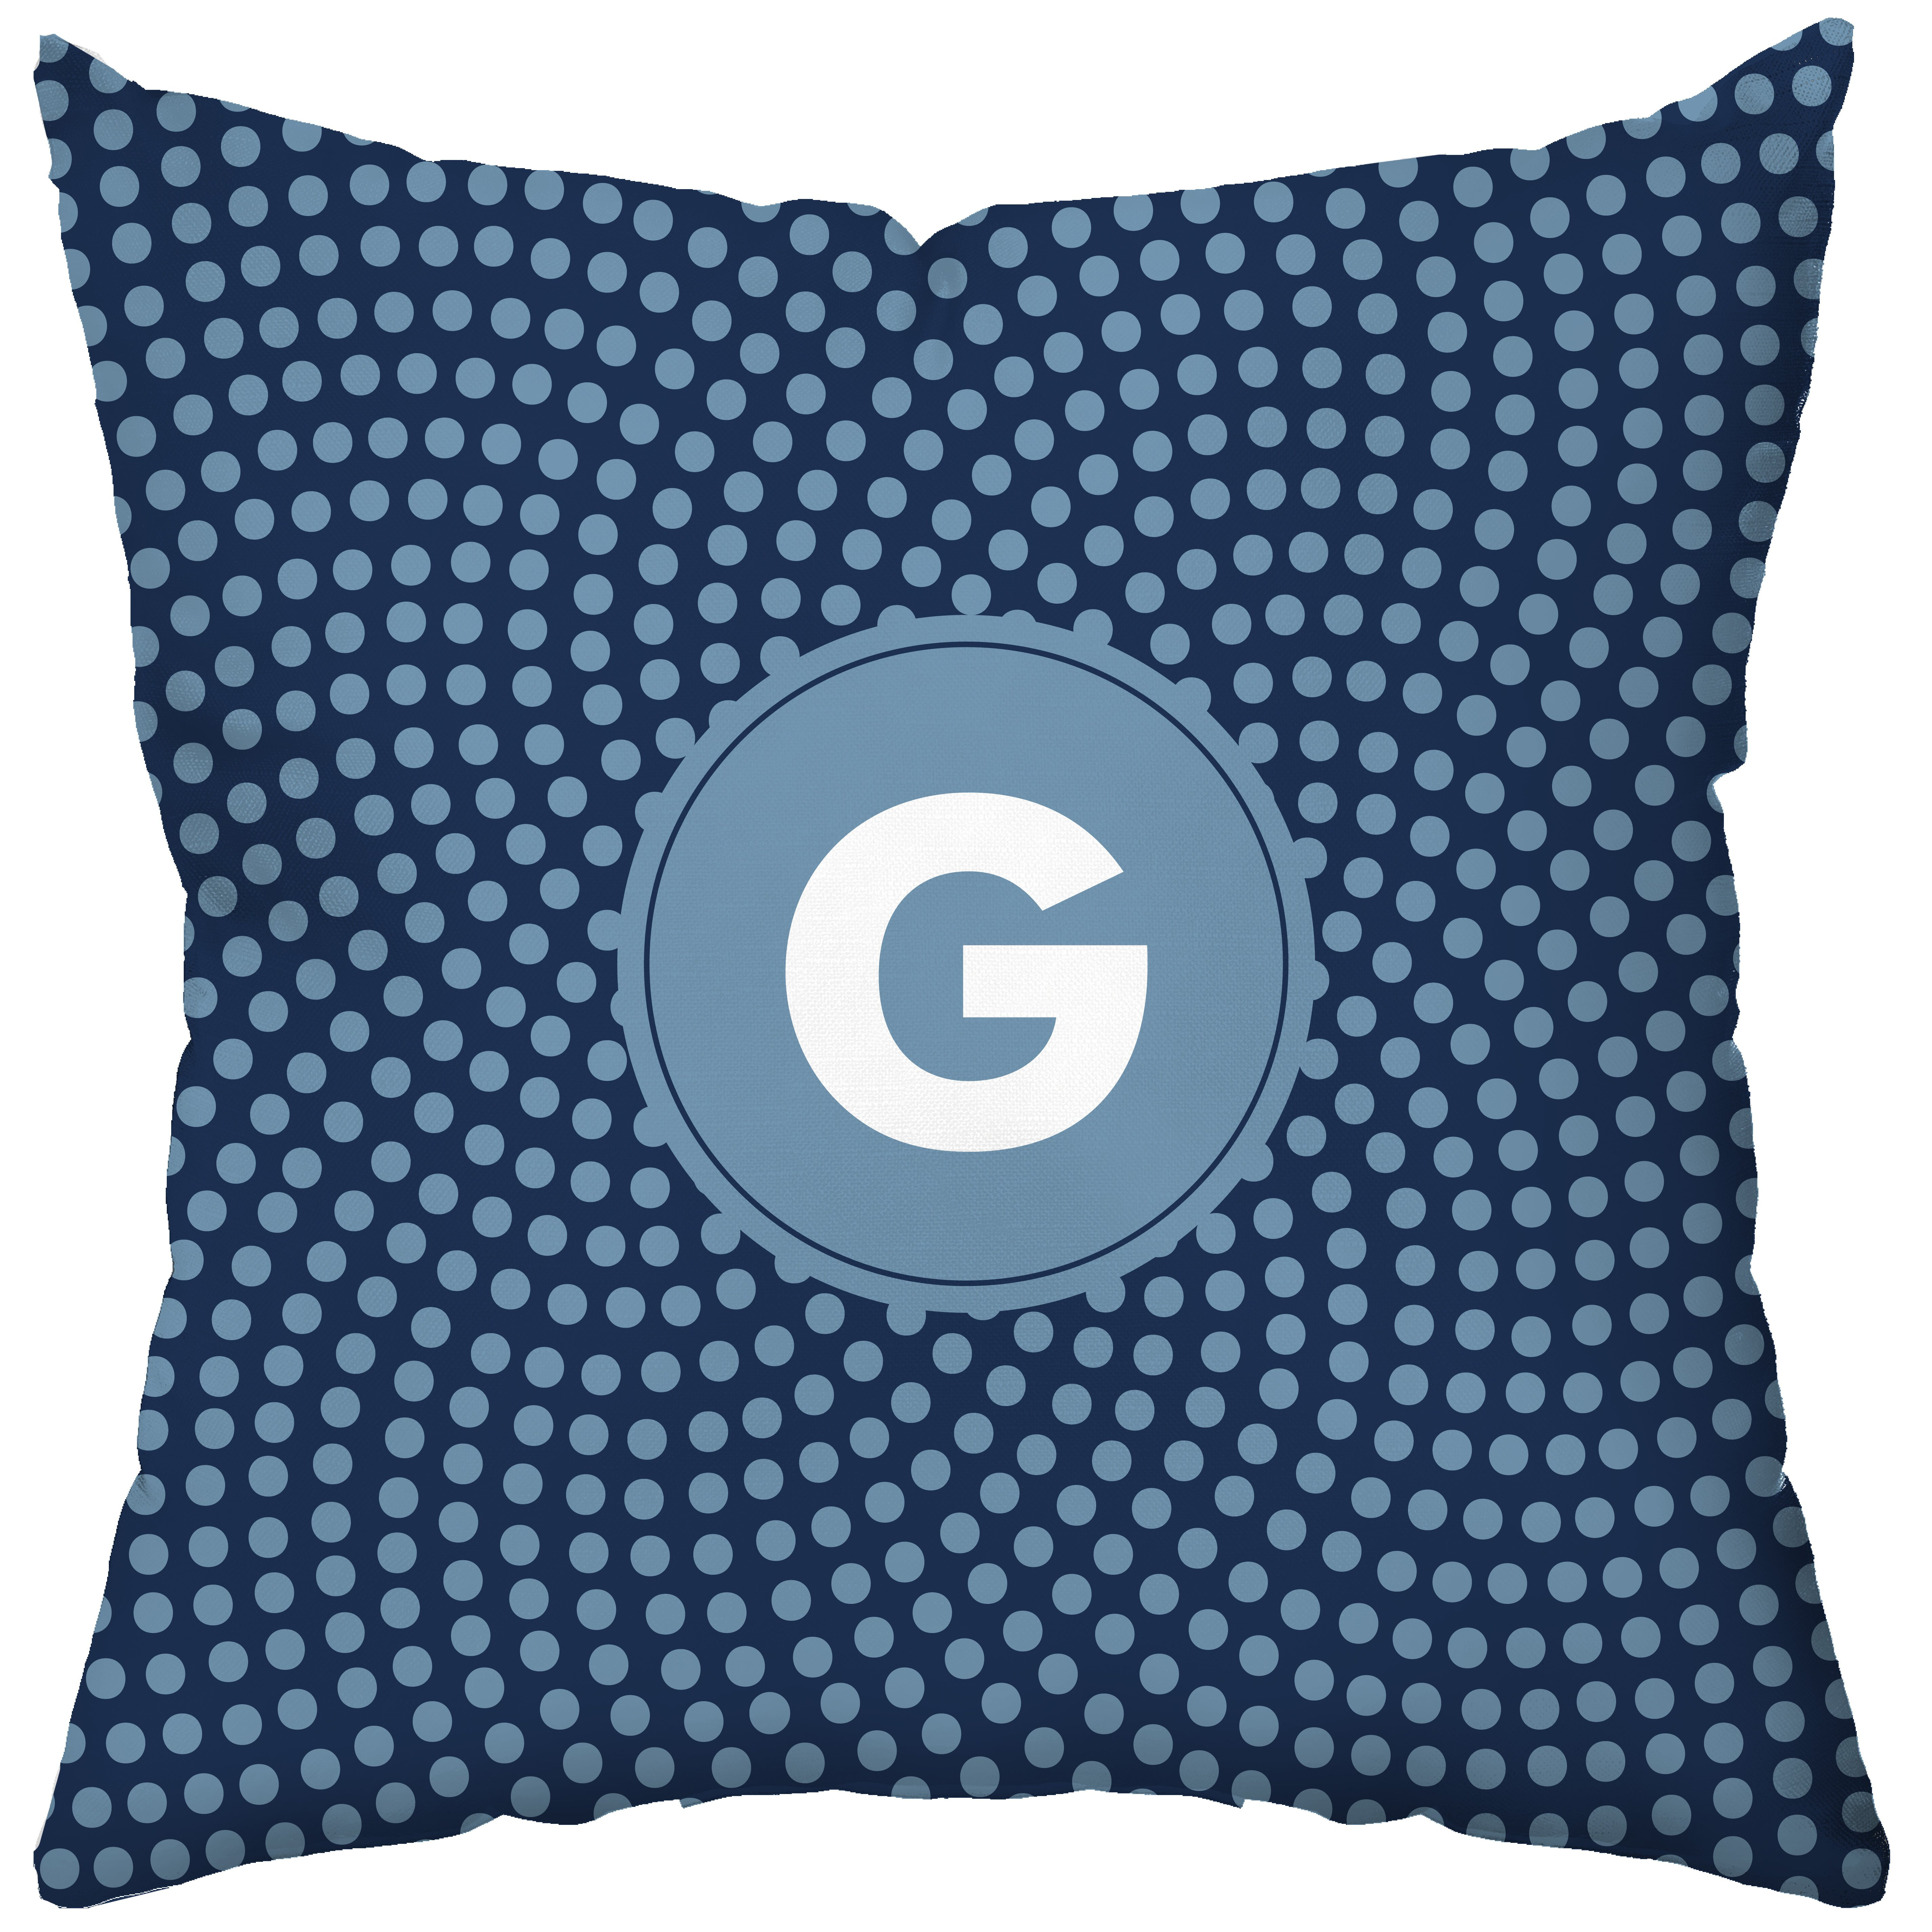 Custom Monogrammed Throw Pillows : Checkerboard Personalized Make a Wish Throw Pillow AllModern